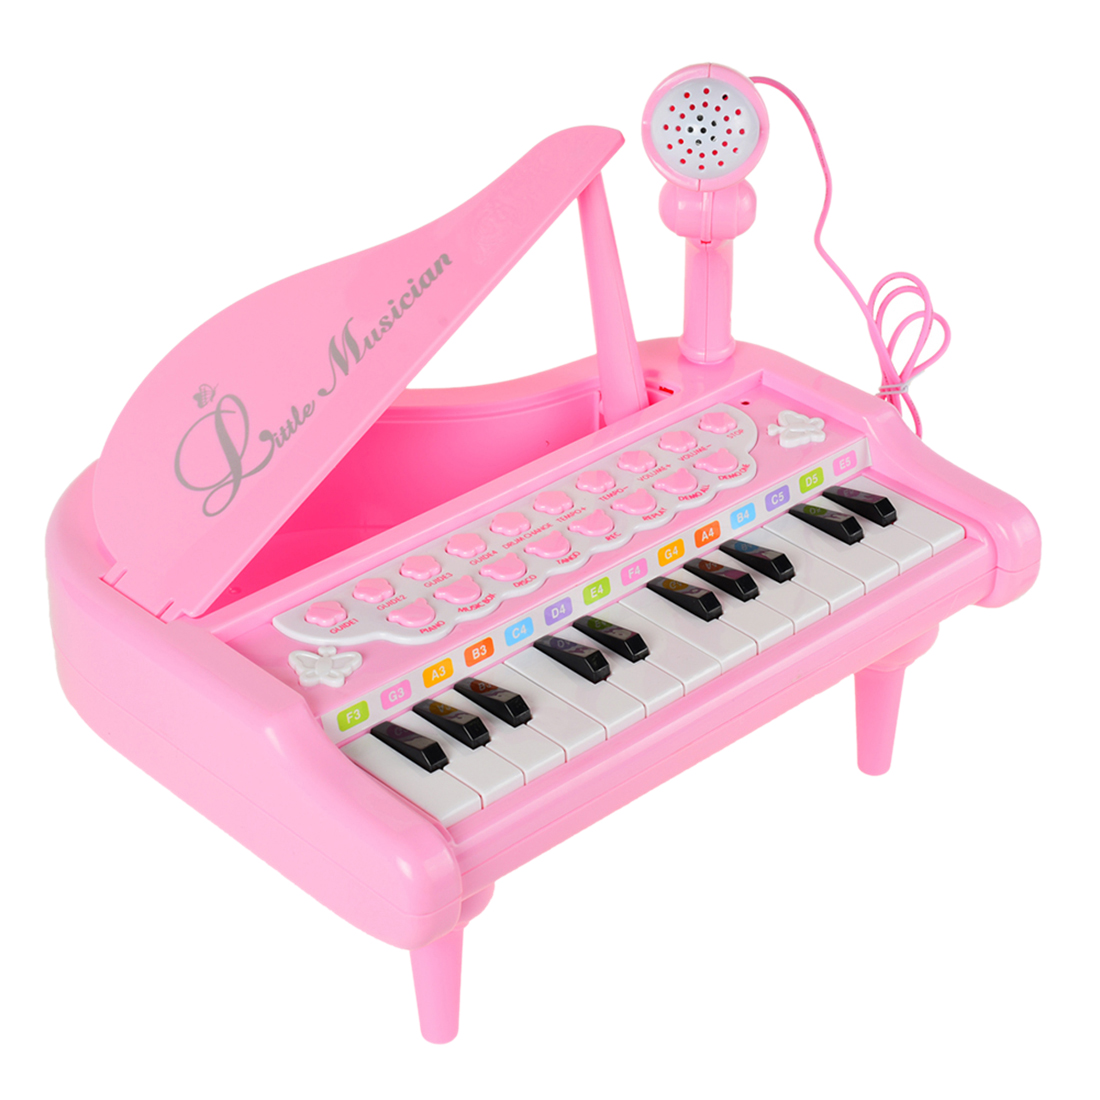 Kids 24 Keys Piano Mini Music Gift Children Musical Toy With Microphone 2019 Christmas Birthday Gift- Pink